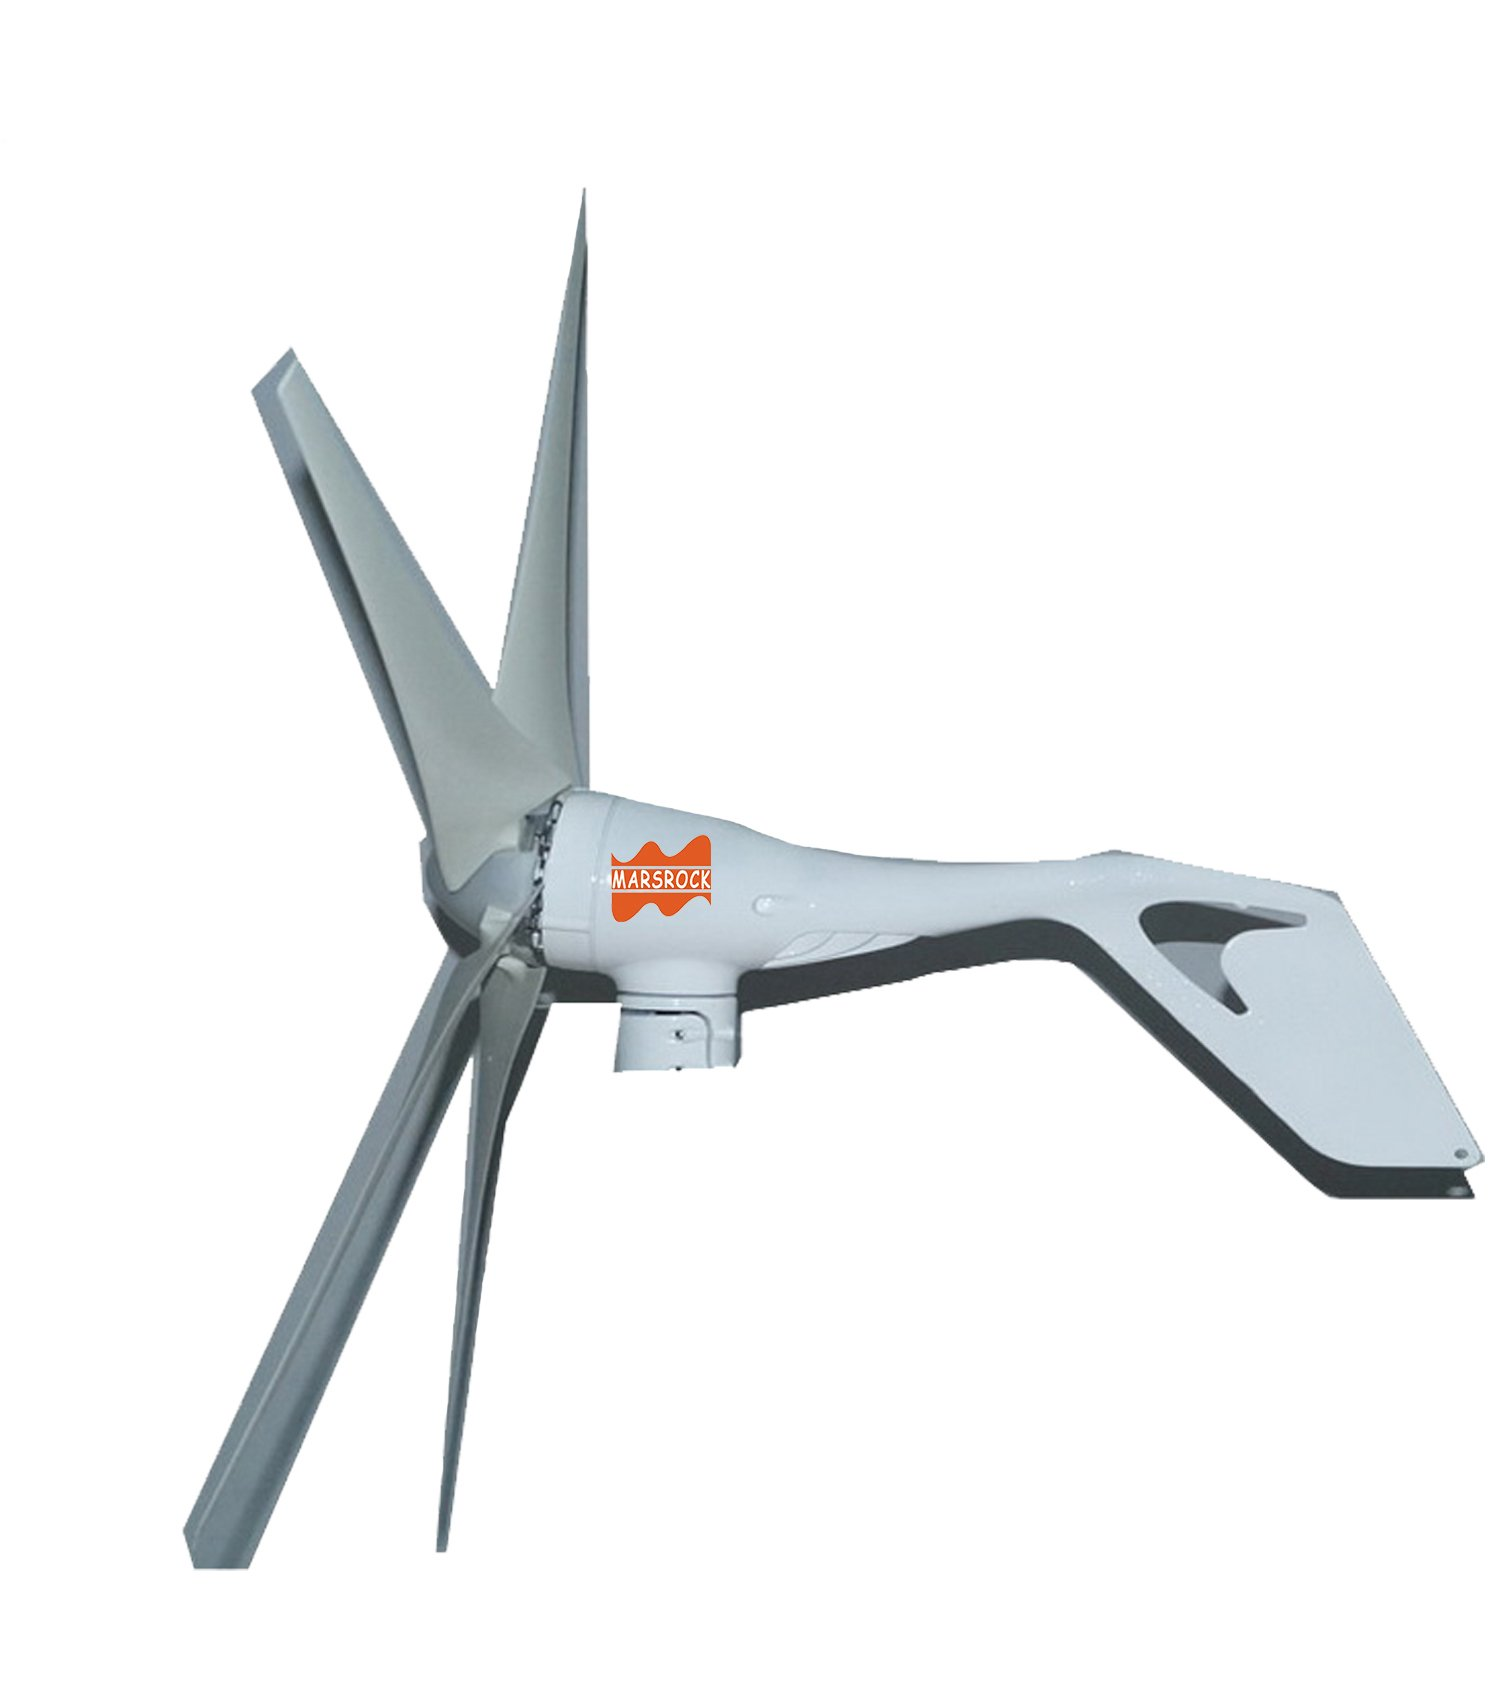 MarsRock Mini Wind Turbine DC 12V or 24V 3 Blades 400W 300W Wind Turbine Generator with built-in Rectifier module , 2M/S Start Wind Speed (400W)